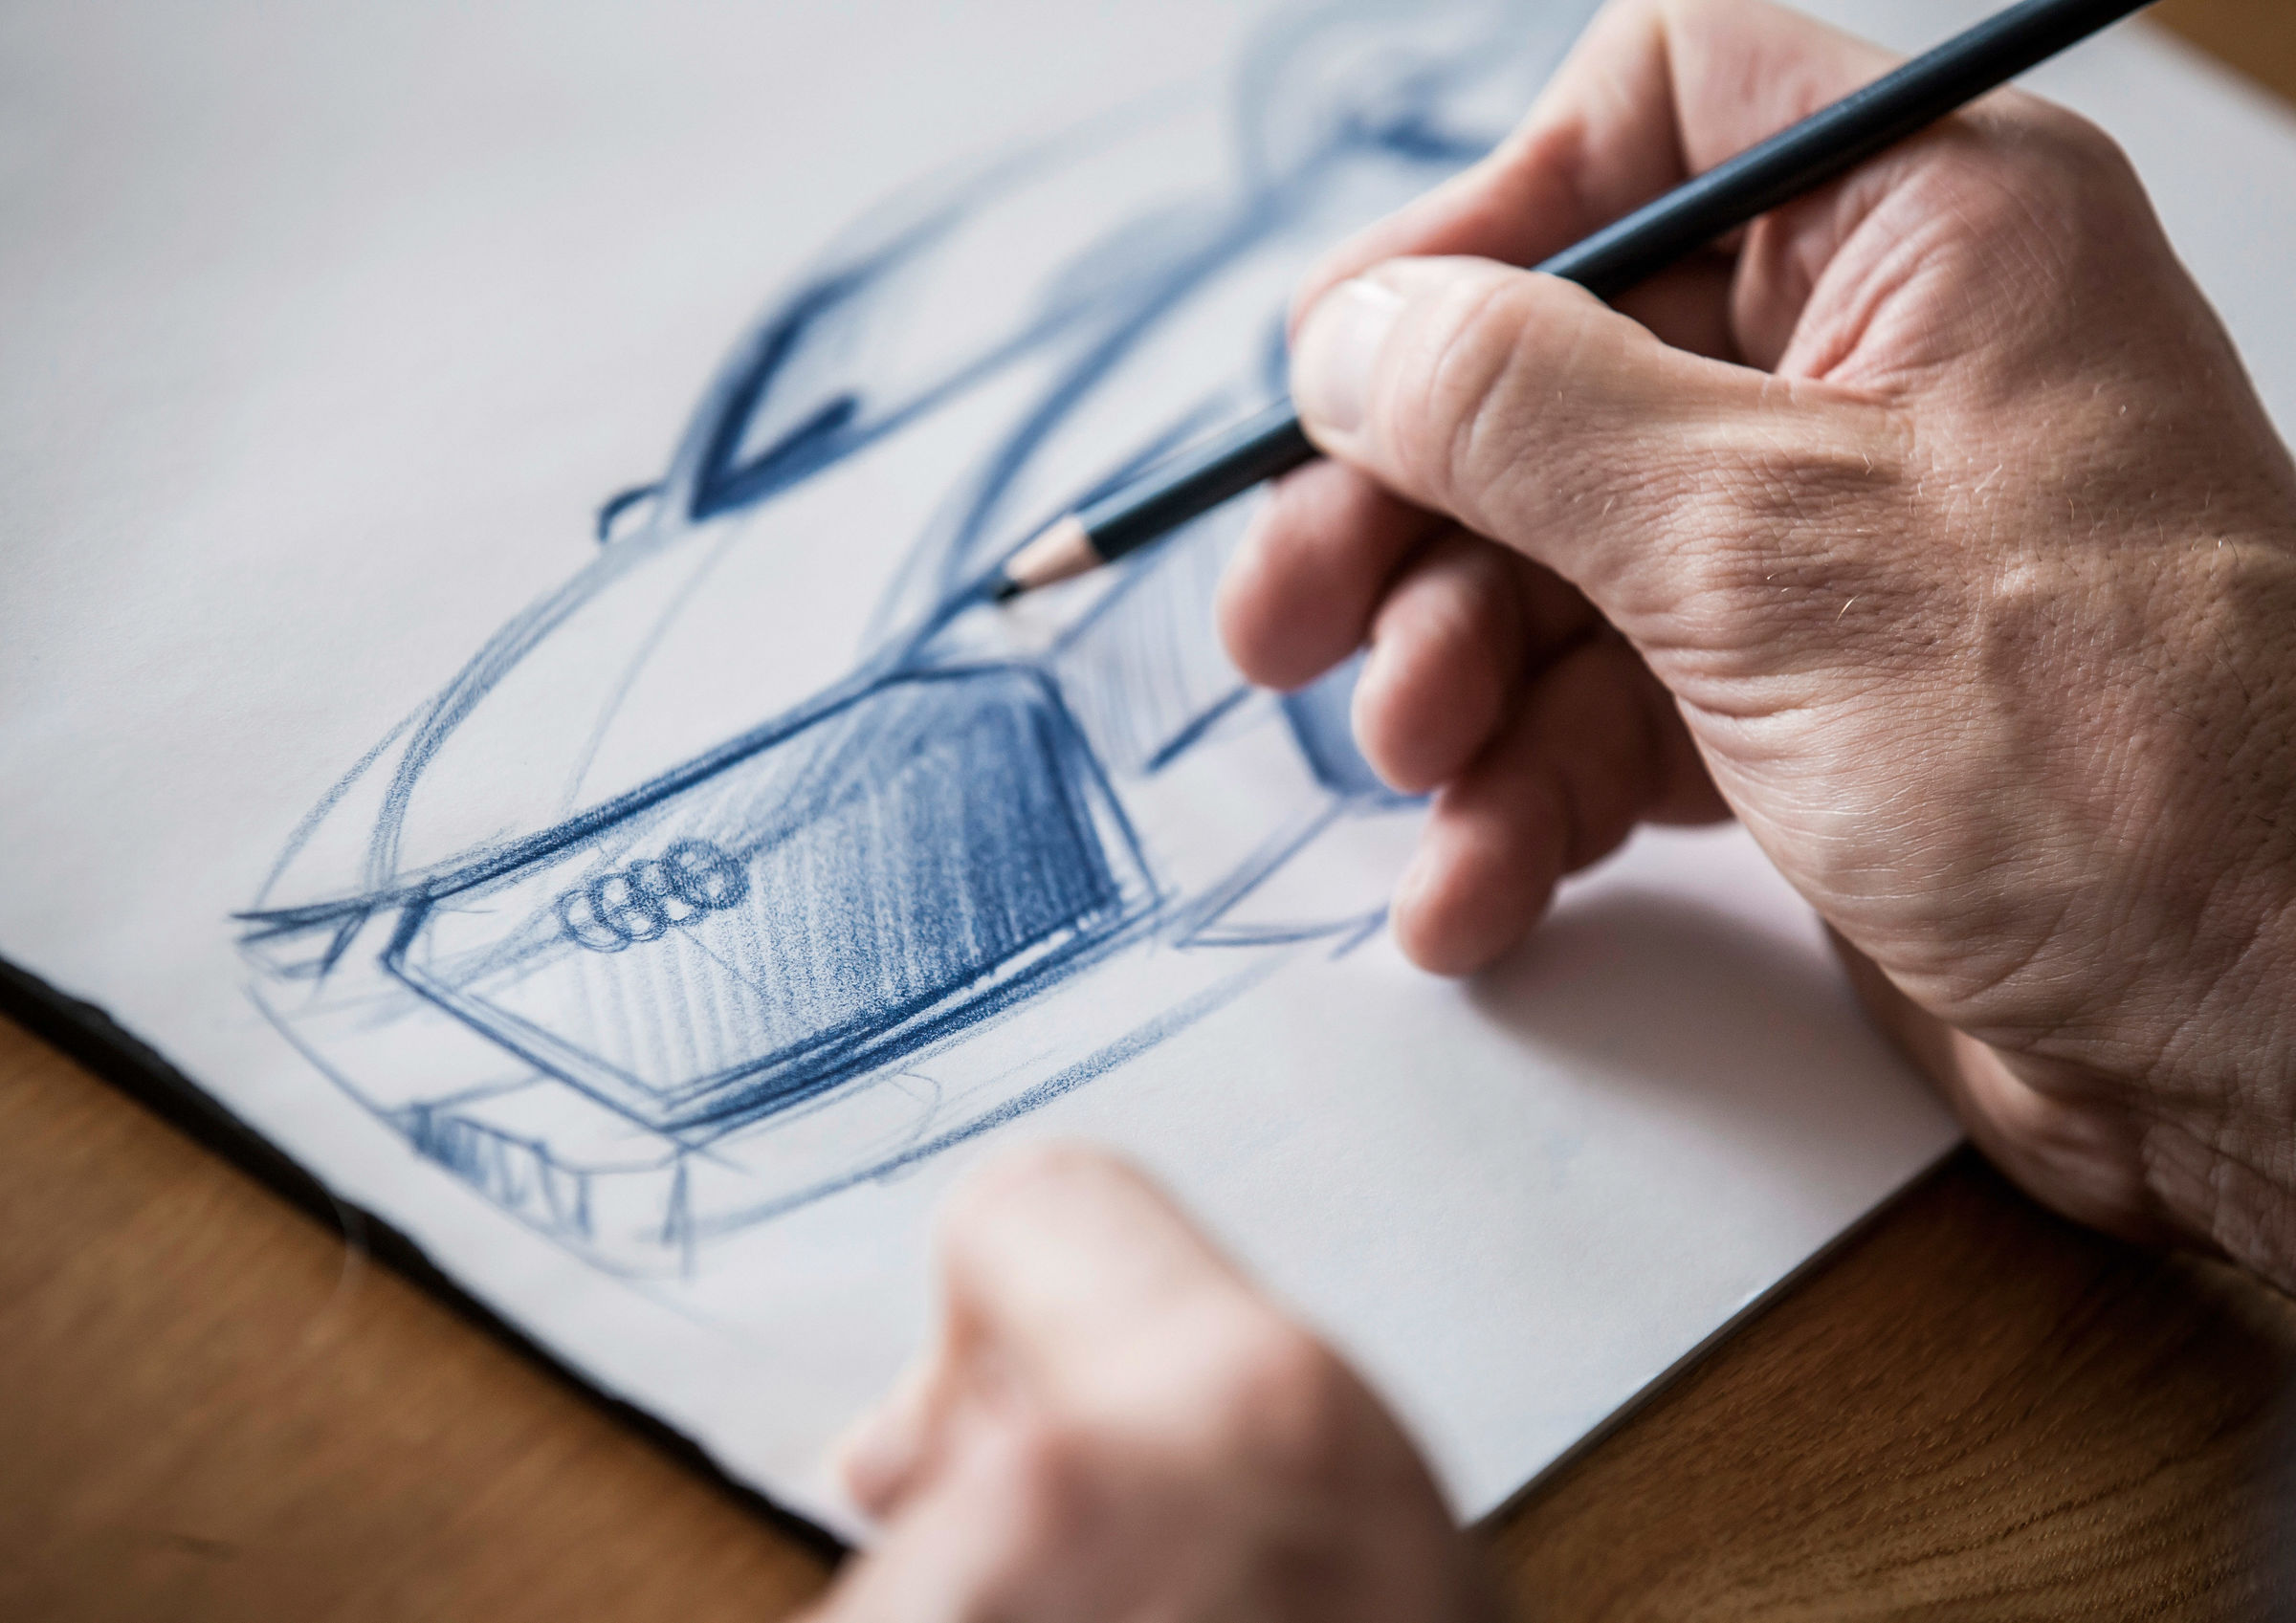 """Tour the design laboratory of Audi online with """"Insight Audi Design"""" - Image 1"""